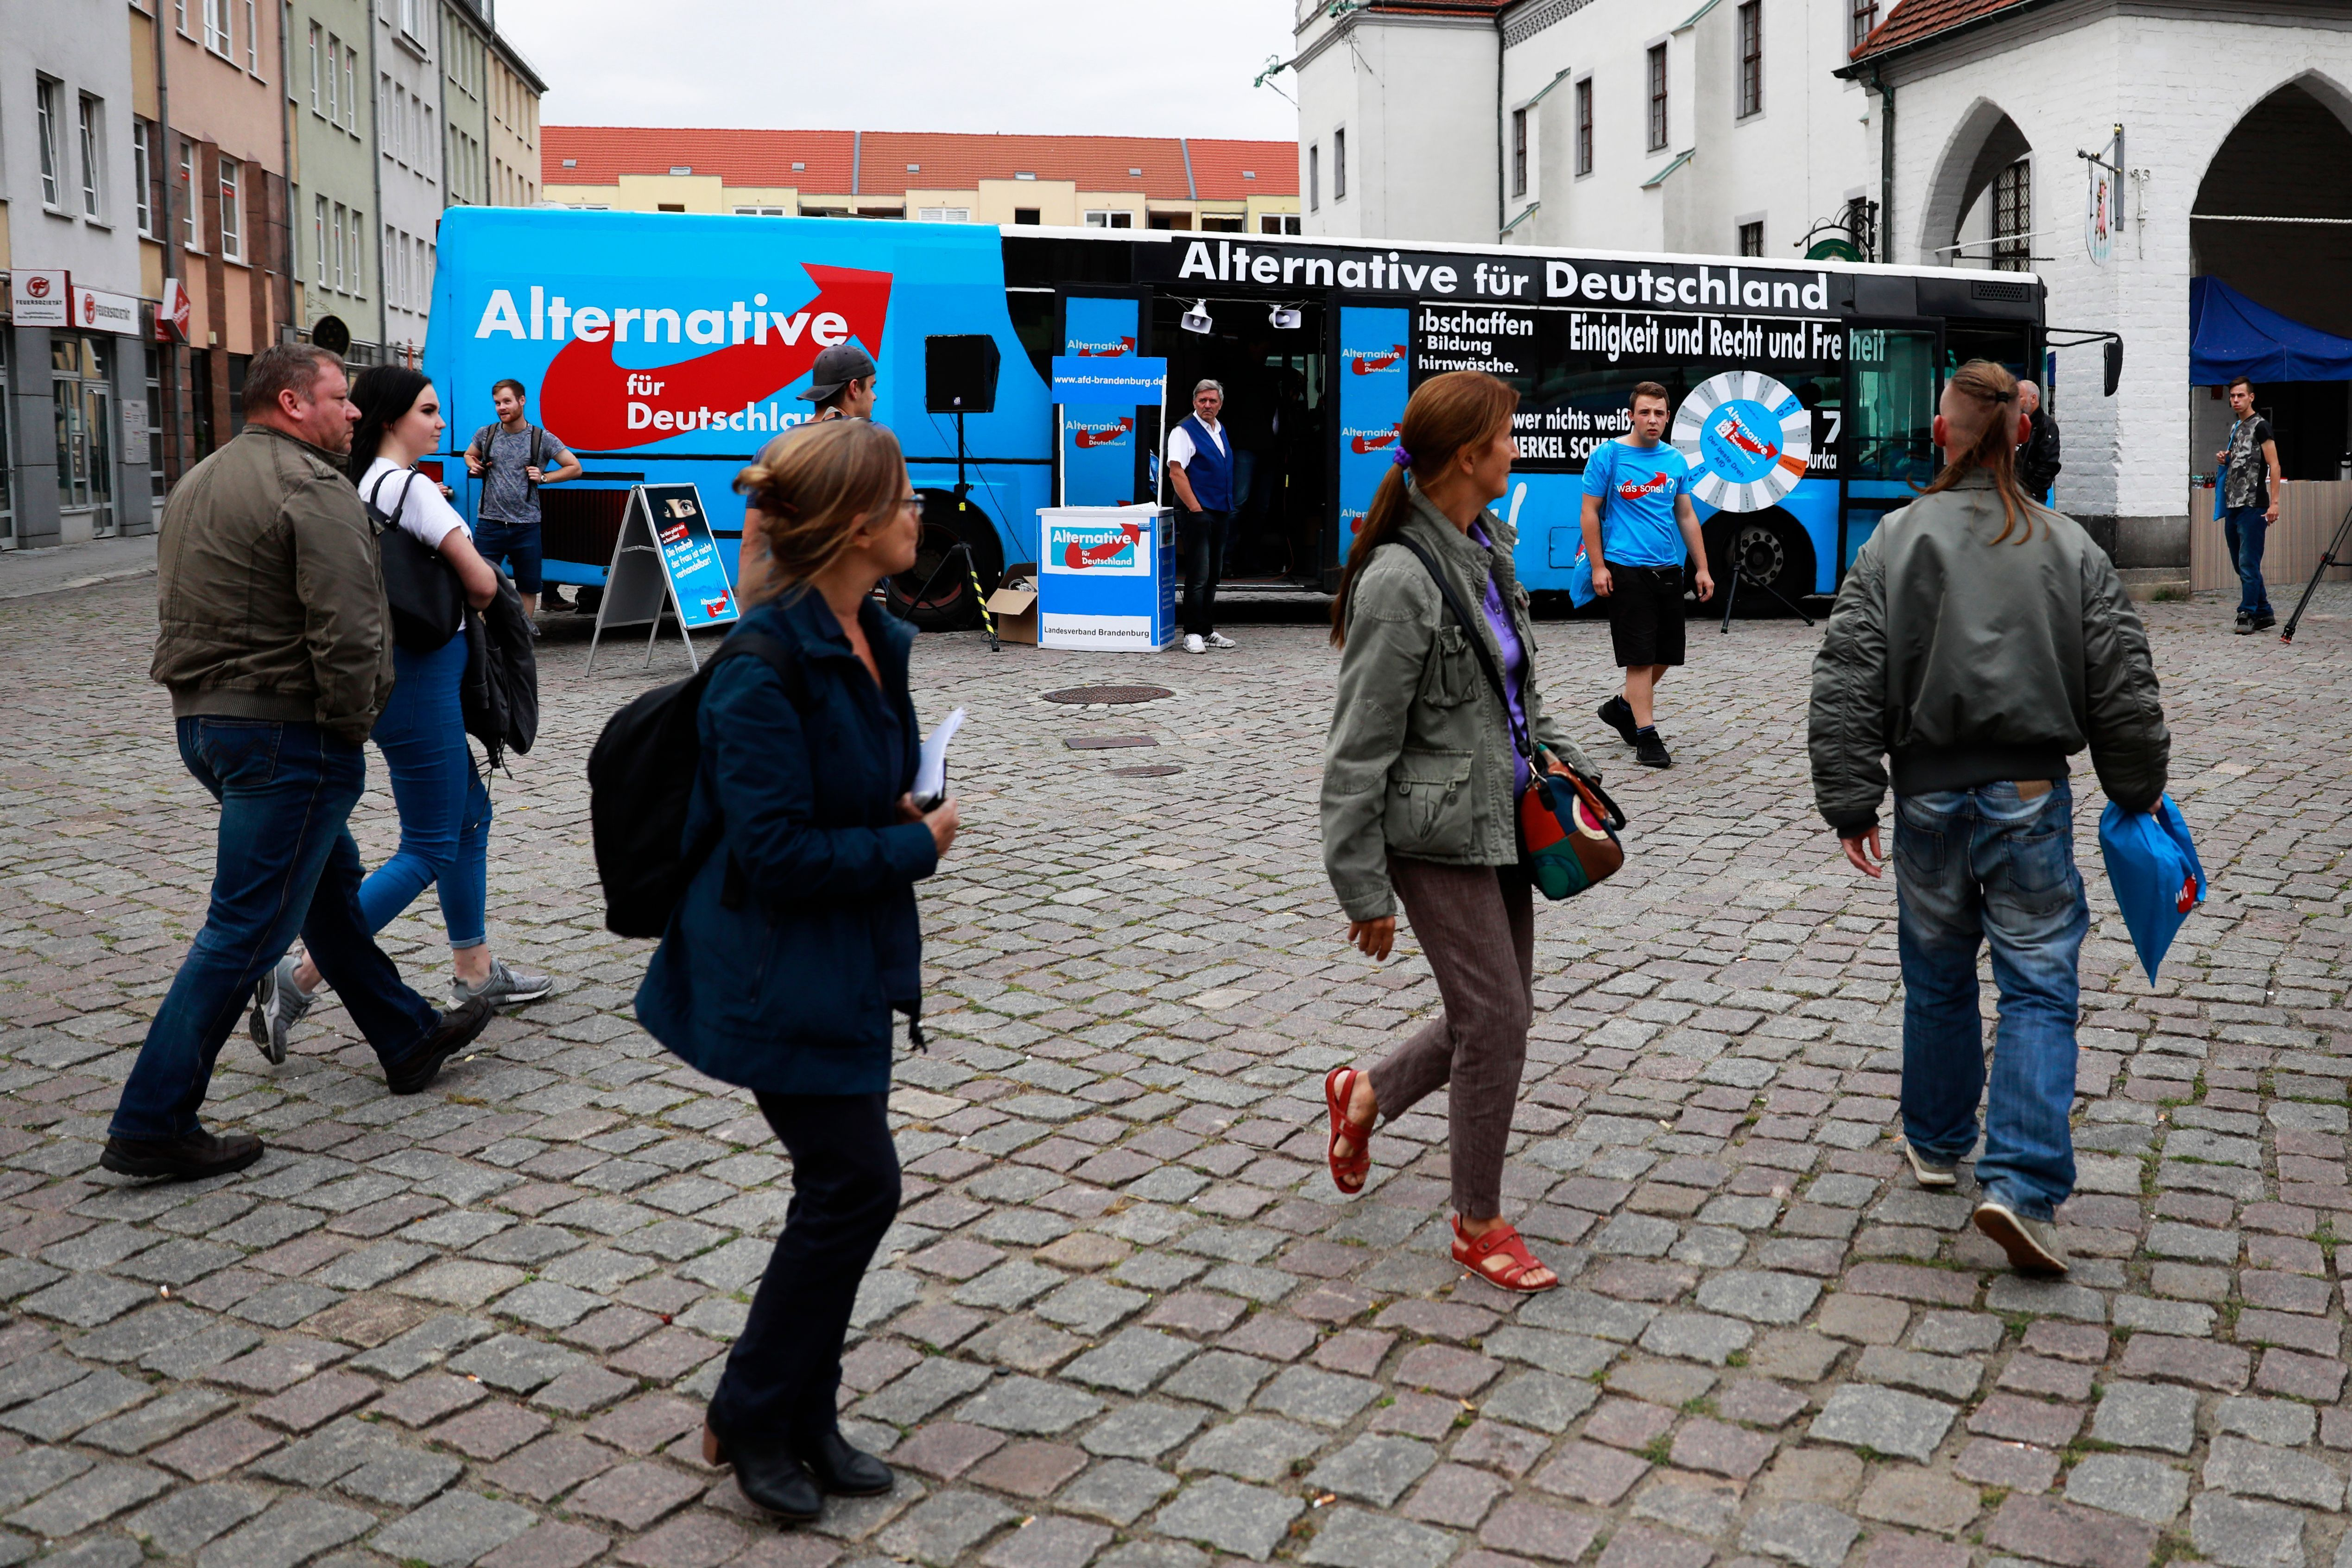 afd voters